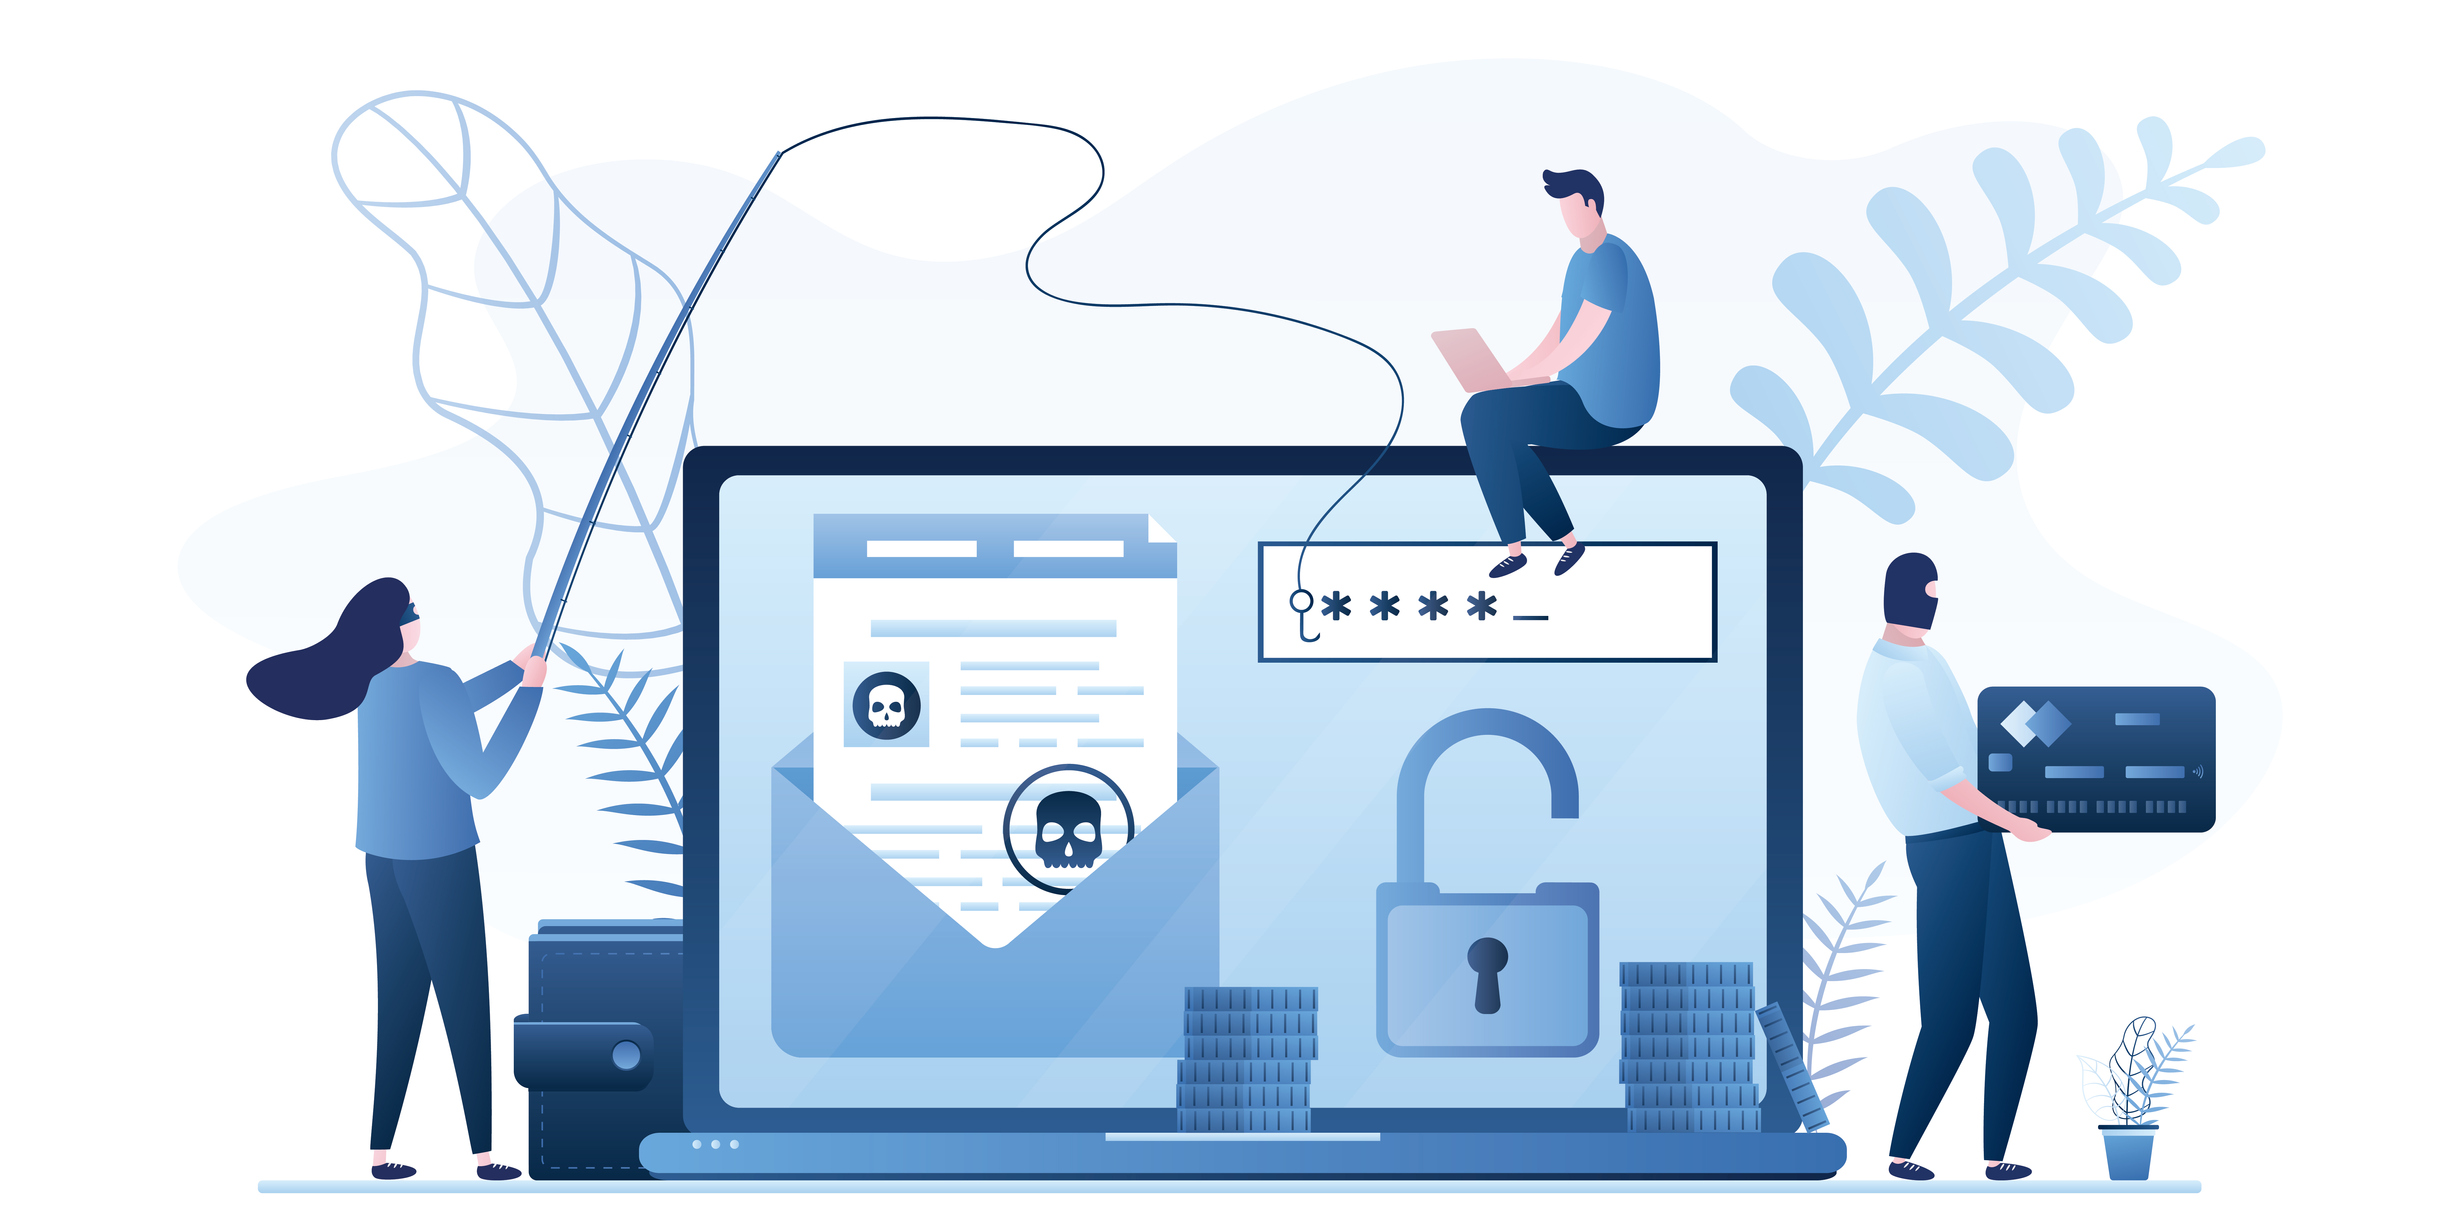 Data phishing concept background. Online scam, malware and password phishing. User with laptop and group of hackers in mask attack computer. Financial Security Problem. Vector illustration